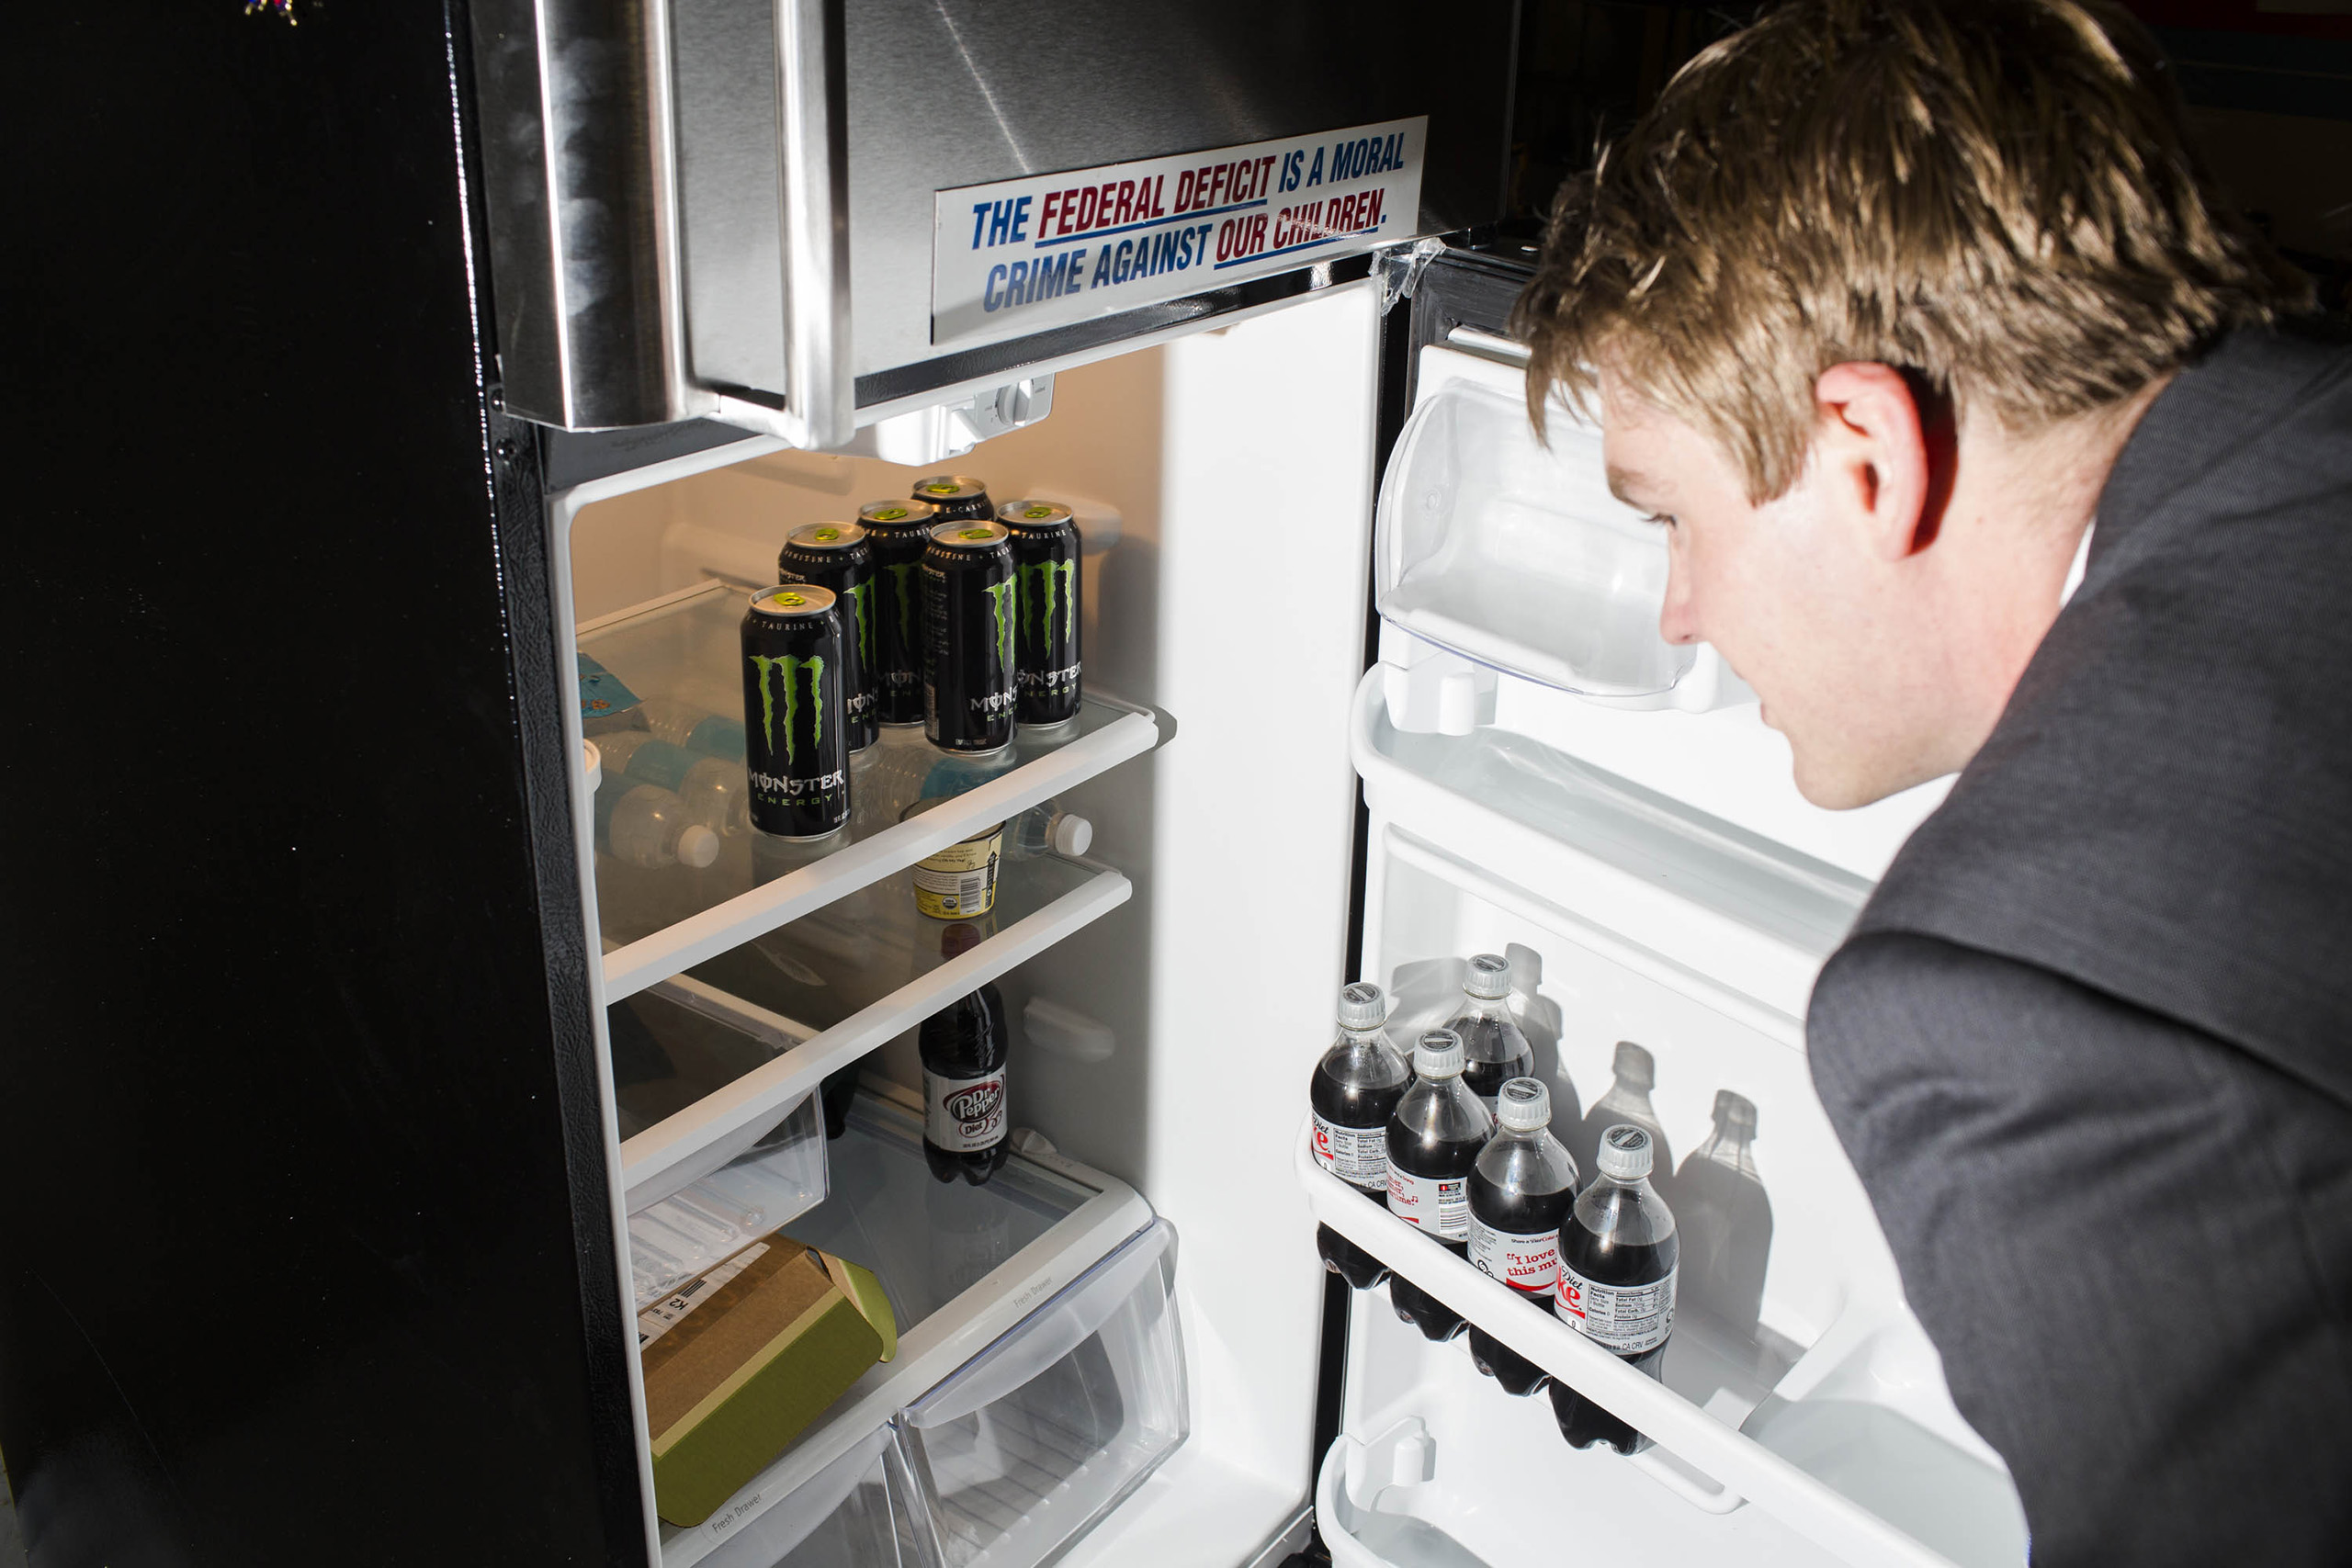 Monster energy drinks inside the refrigerator at the campaign headquarters of Donald Trump on May 24, 2016, in Trump Tower in New York City.